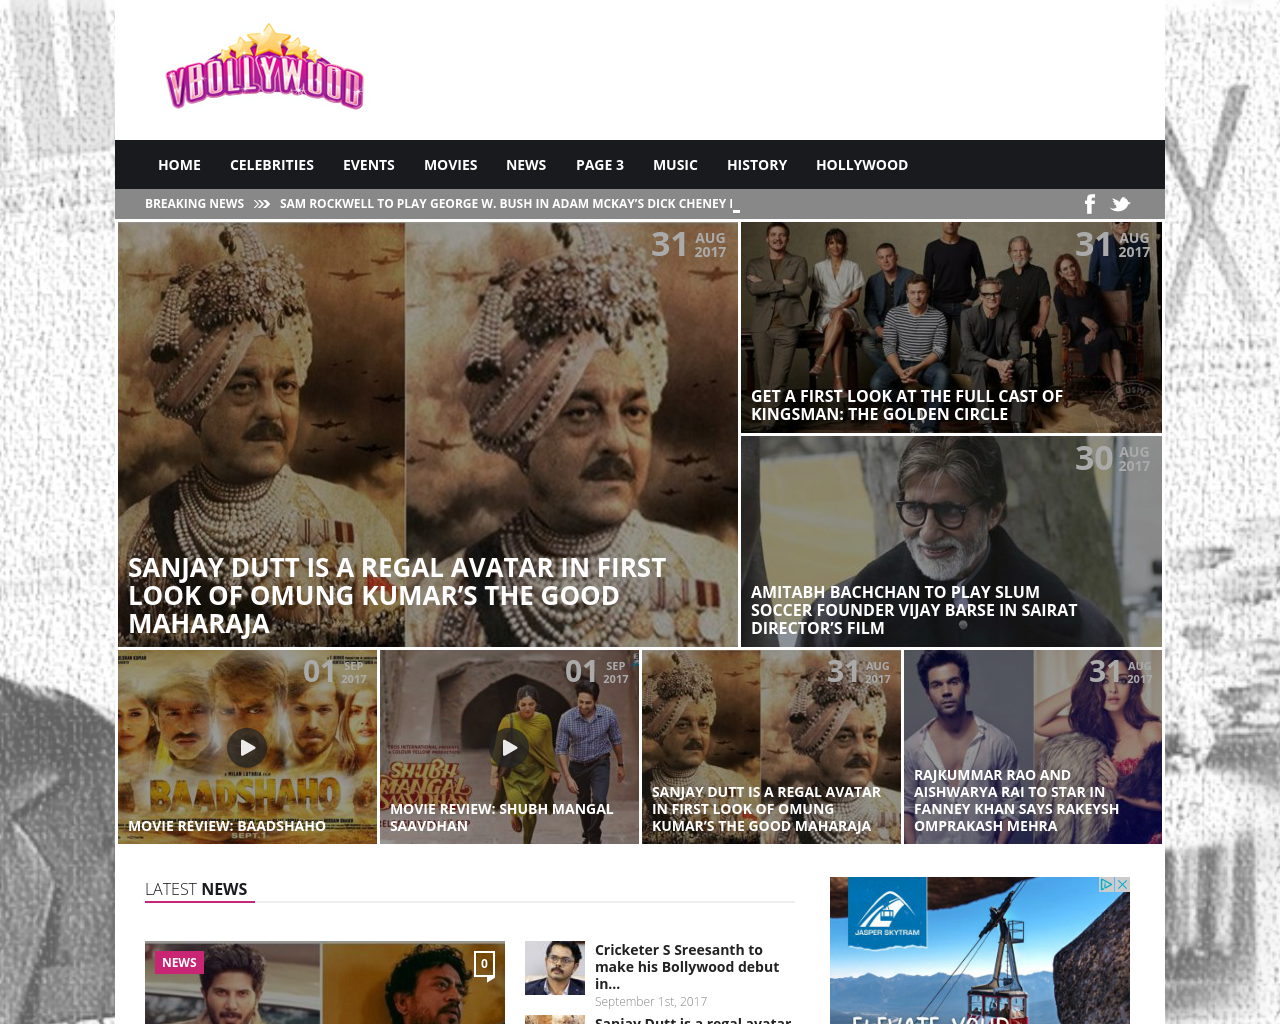 Vbollywood-Advertising-Reviews-Pricing